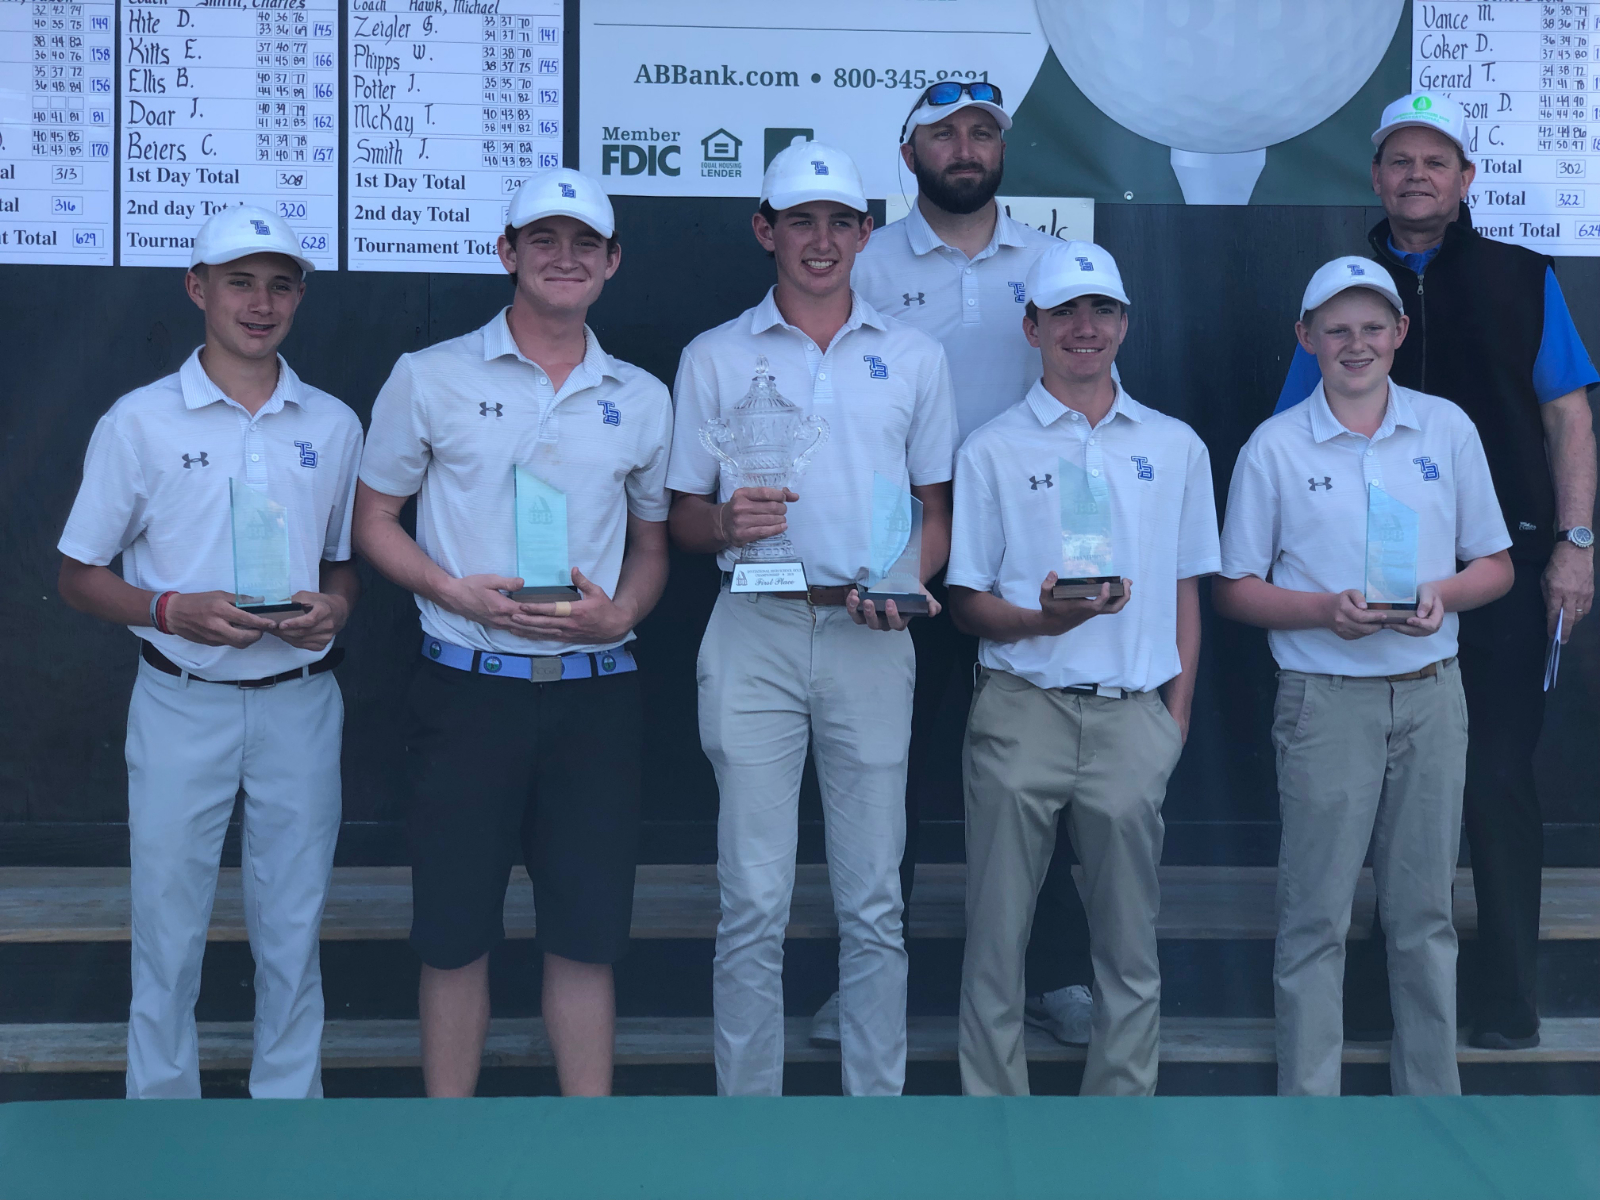 Golf Team Wins Anderson Brothers Invitational